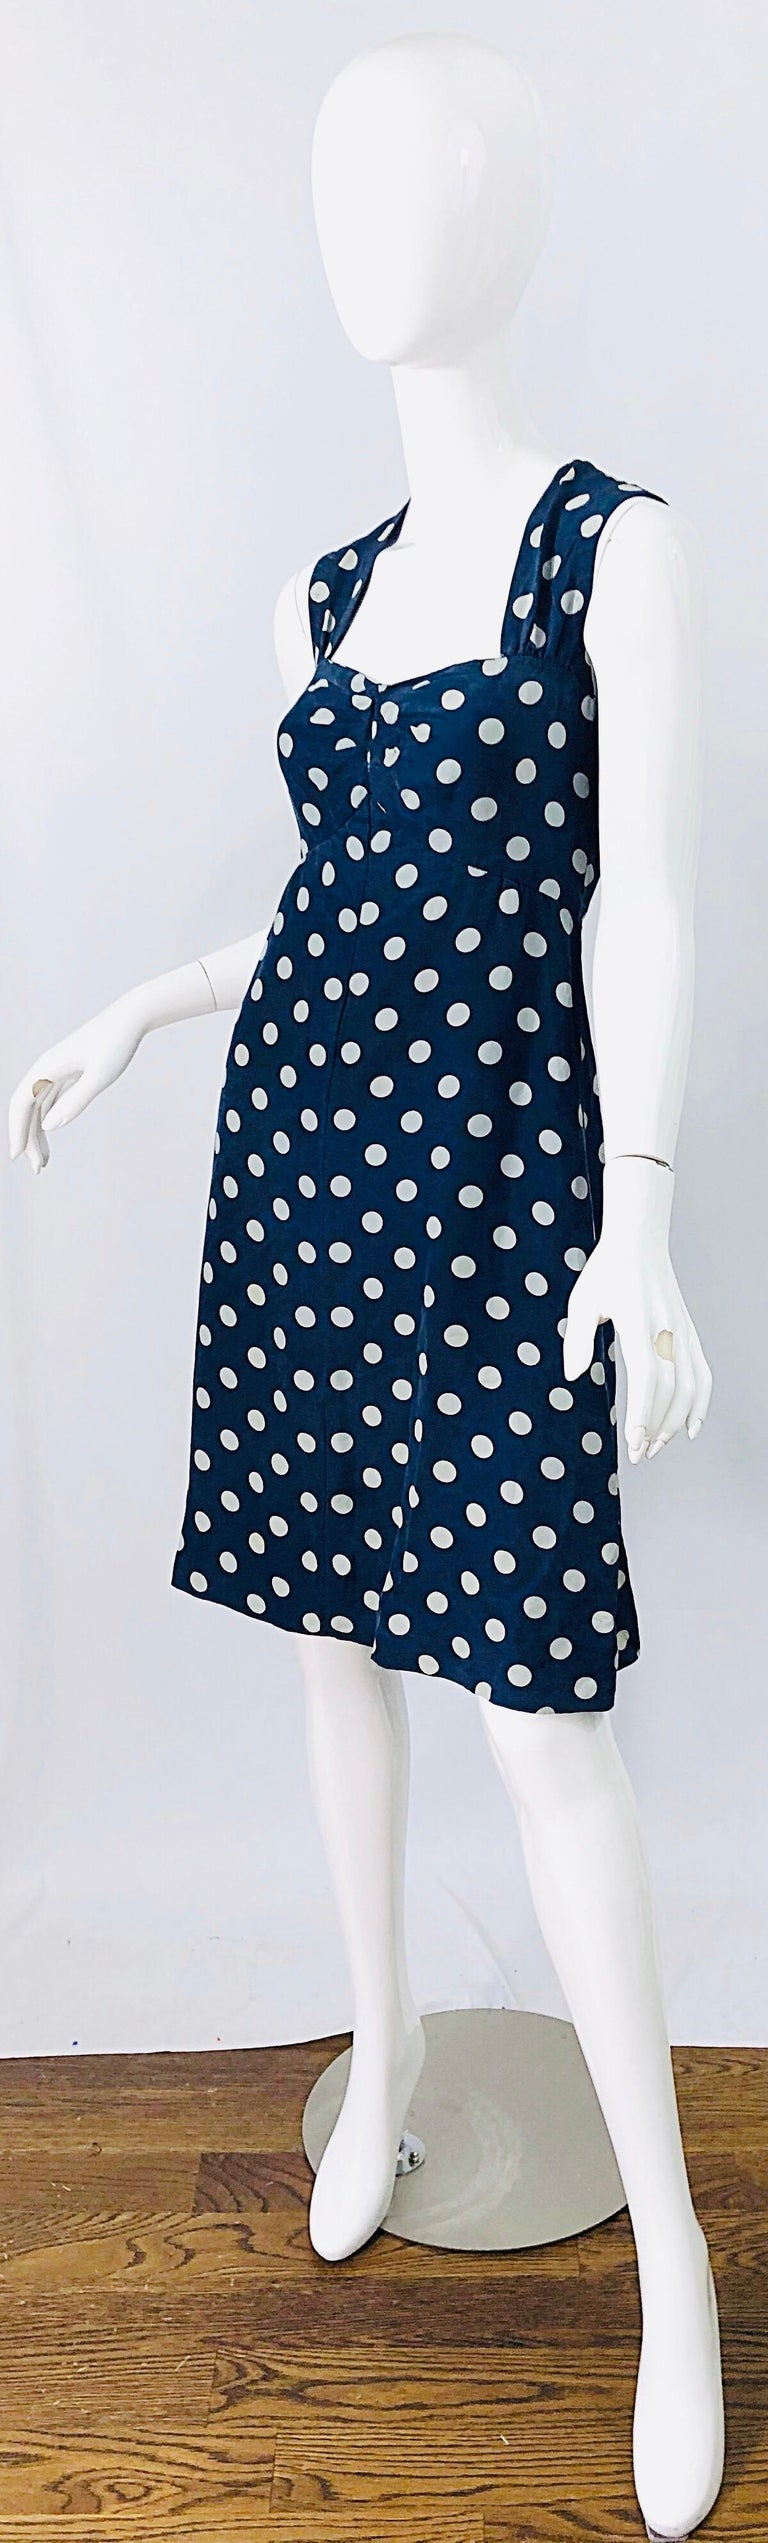 Black Vintage Yves Saint Laurent 1980s Navy Blue + White Polka Dot Silk 80s Dress YSL For Sale